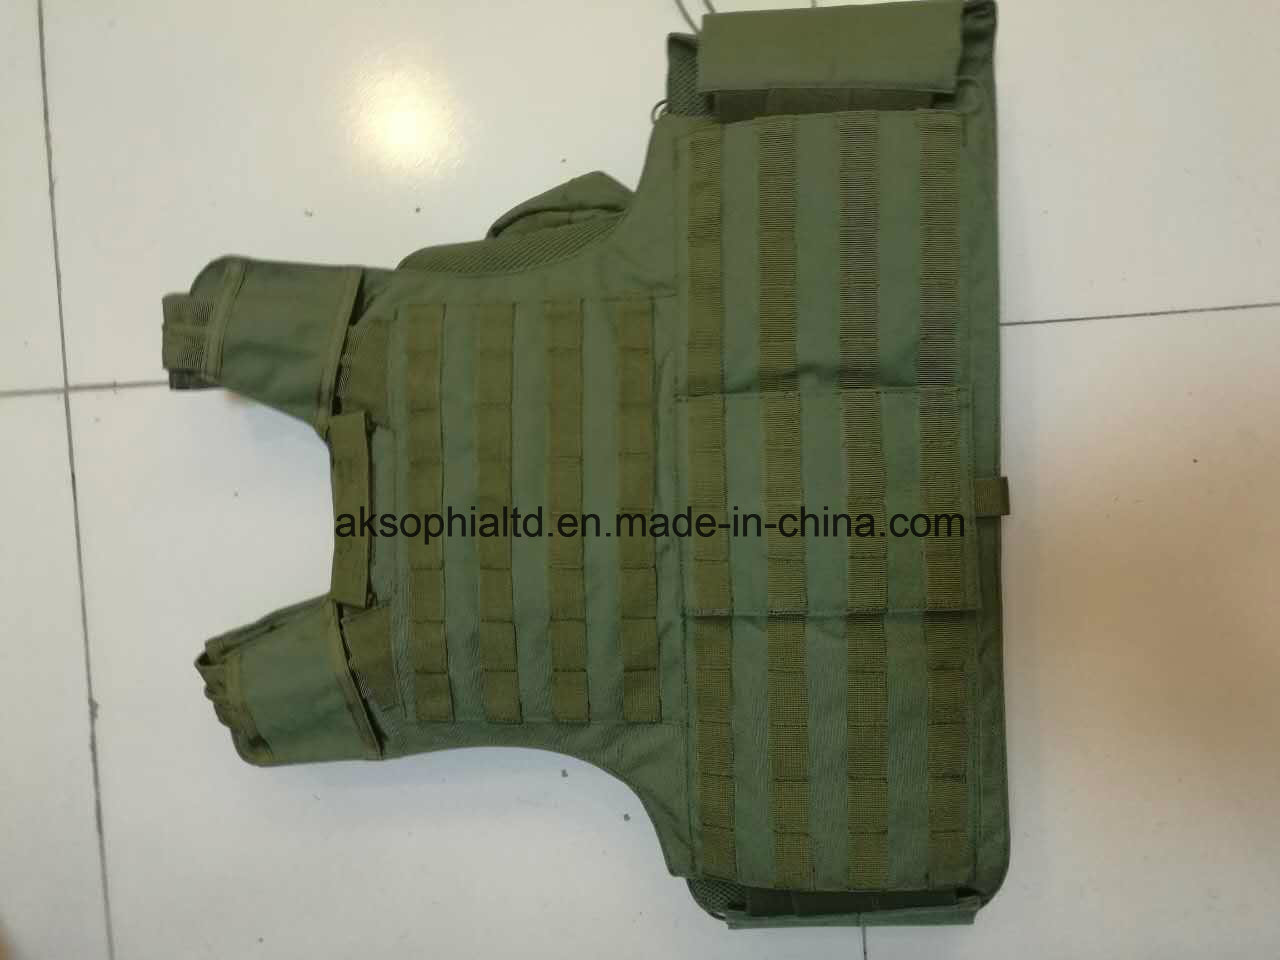 2016 Kevlar Made in China Quick-Removal Tactical Anti-Bullet Military Use Multi-Functional -Pockets Vest